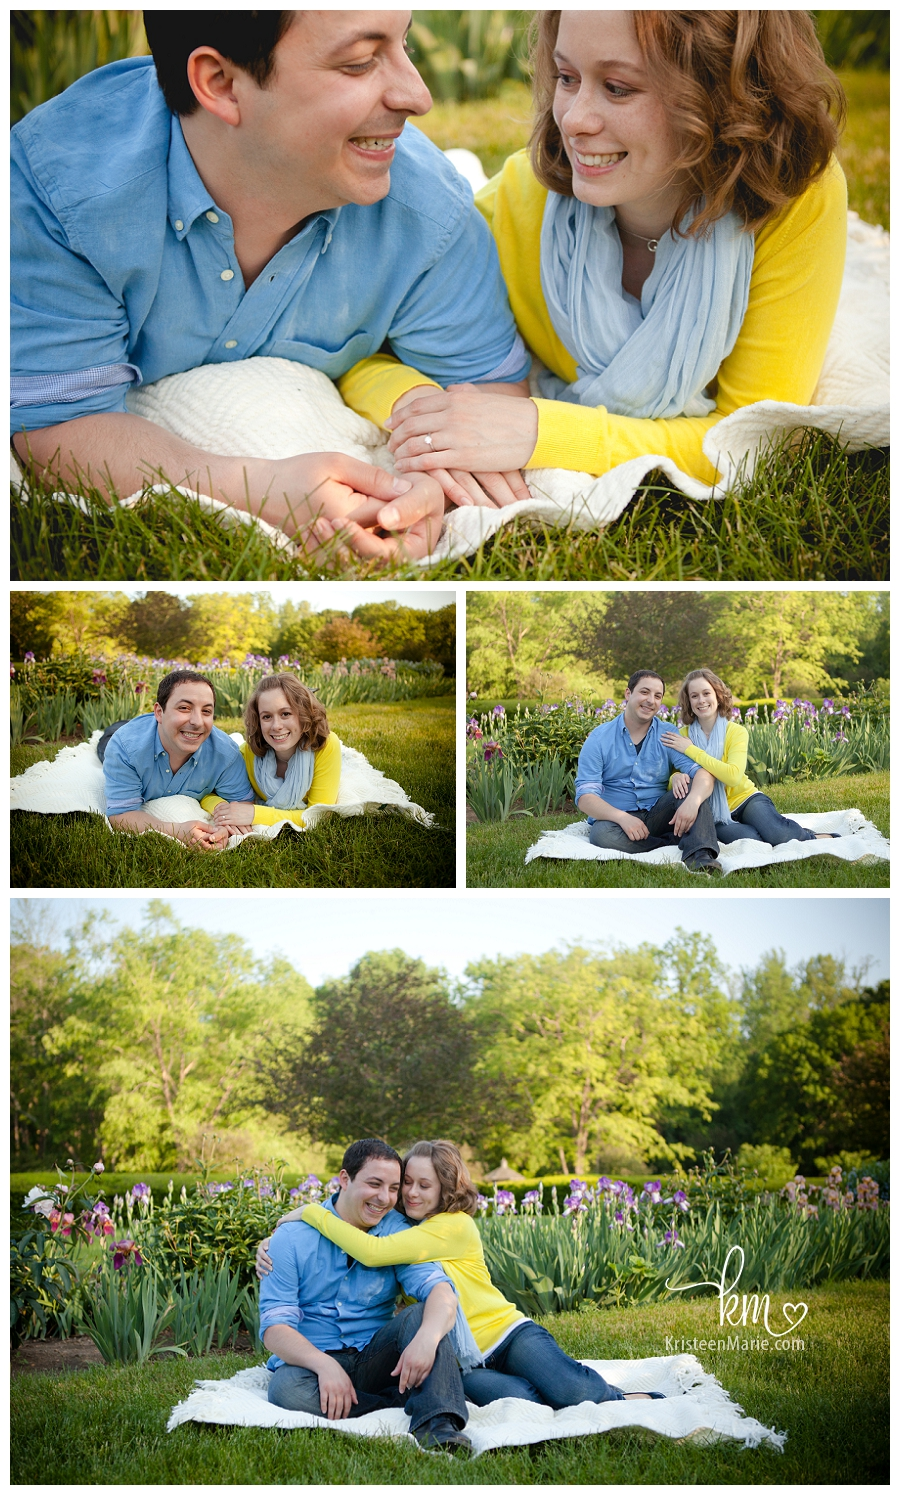 engagement picture on blanket in garden